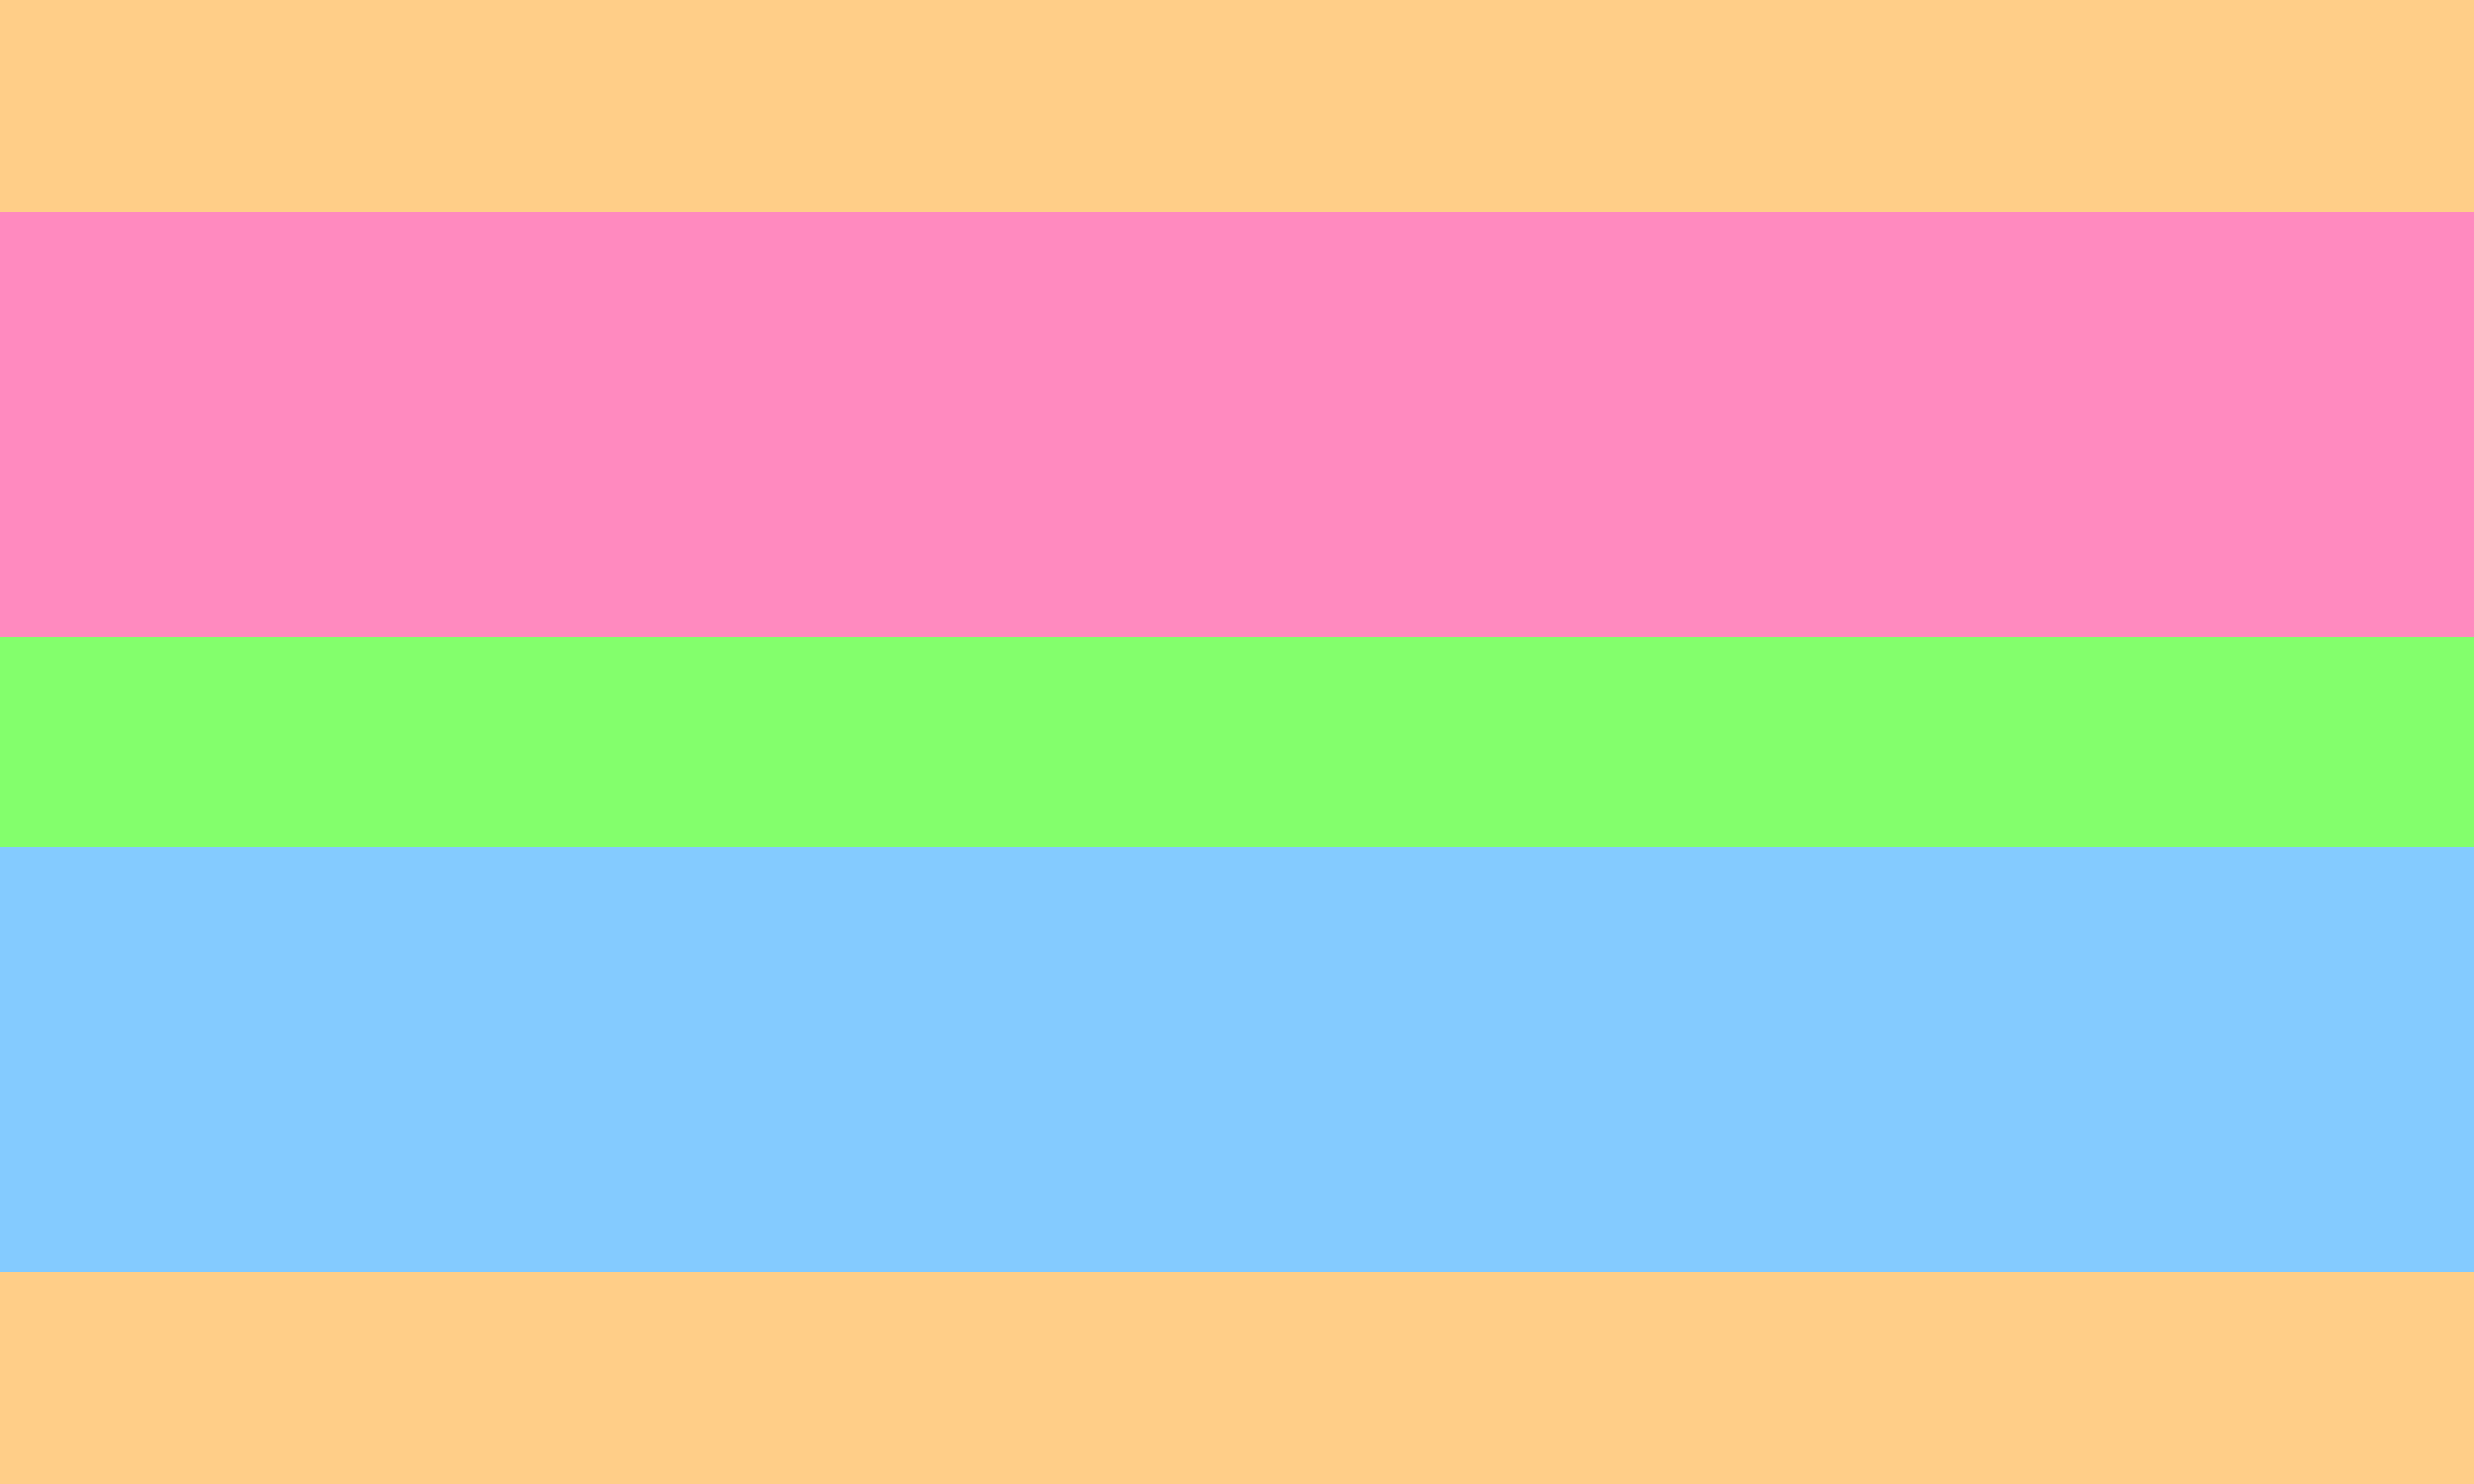 polysensual feminine masculine leaning flag 2 by pride flags on